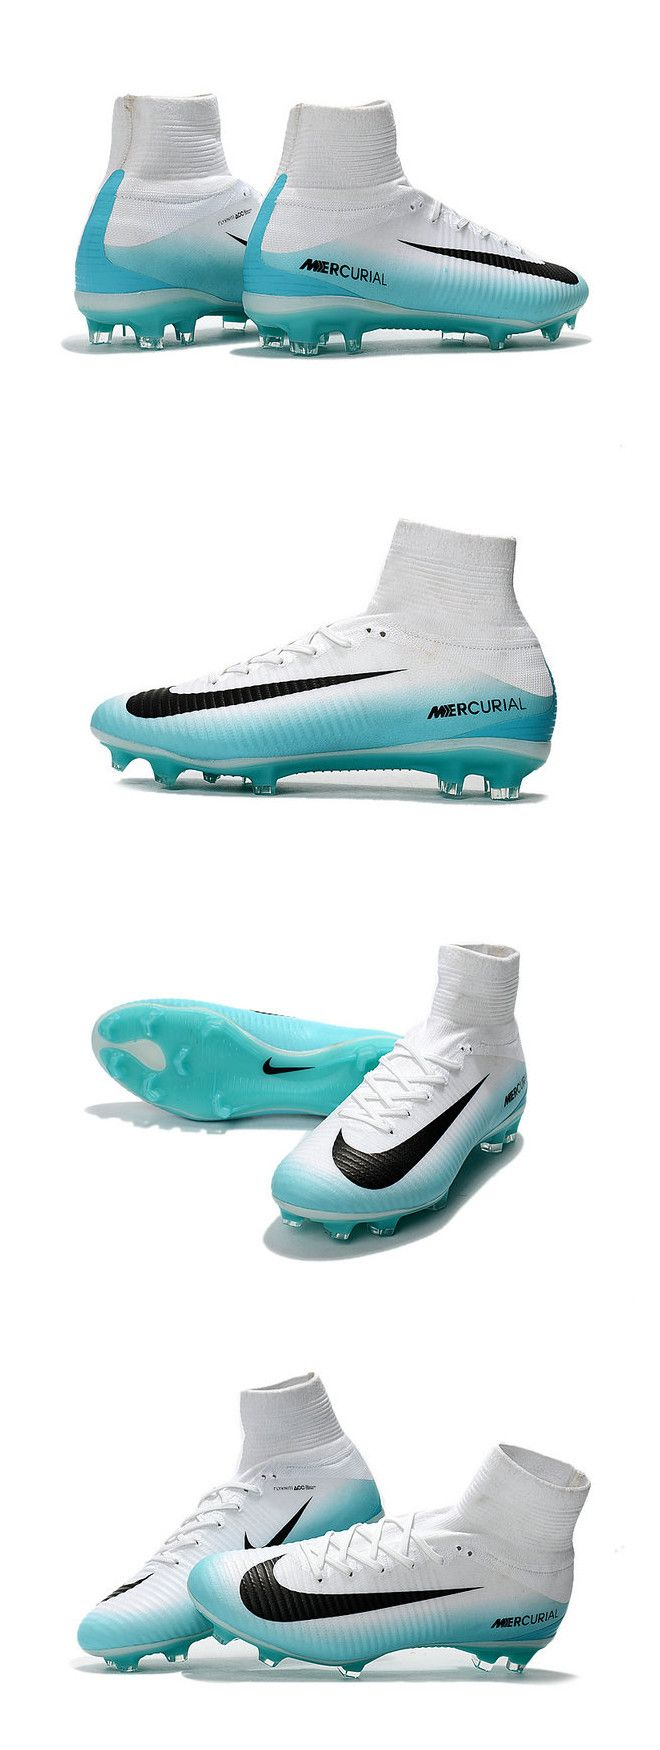 Highly responsive carbon-fiber plate for explosive speed in all directions.White Nike Mercurial Superfly 5 with new chevron bladed studs, you now get better traction for straight line, explosive speed.